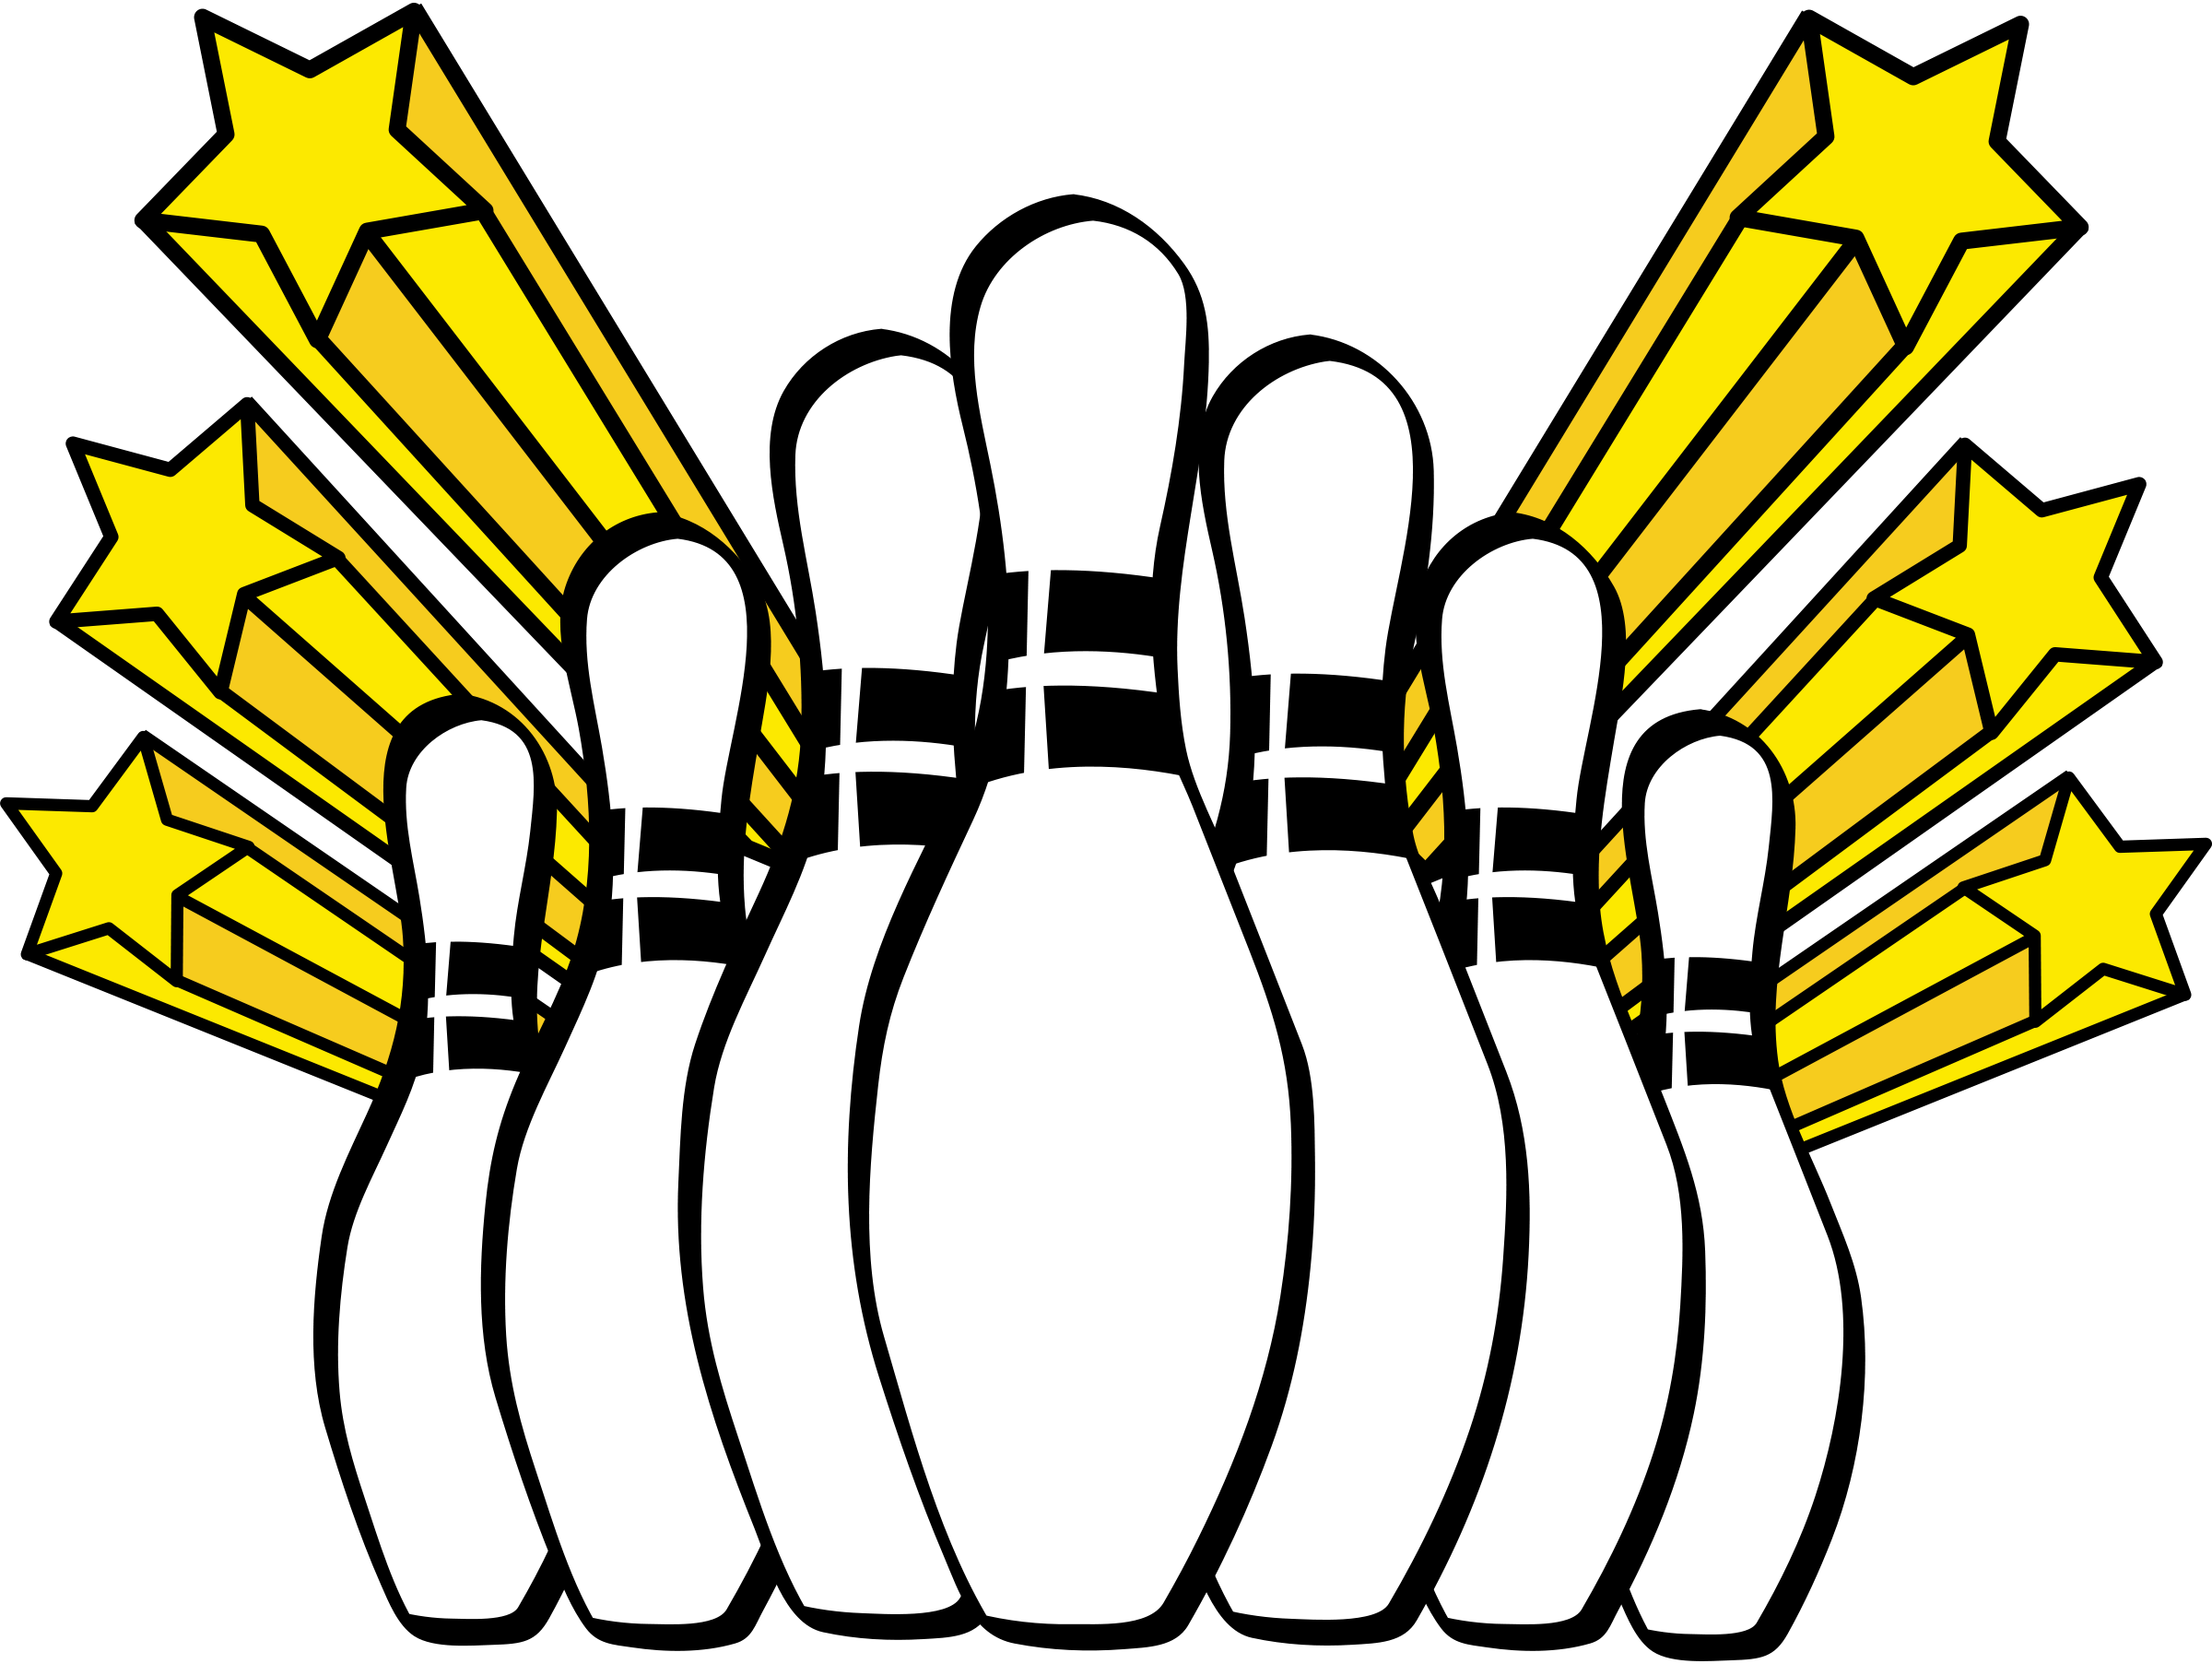 Pins drawing. Bowling at getdrawings com